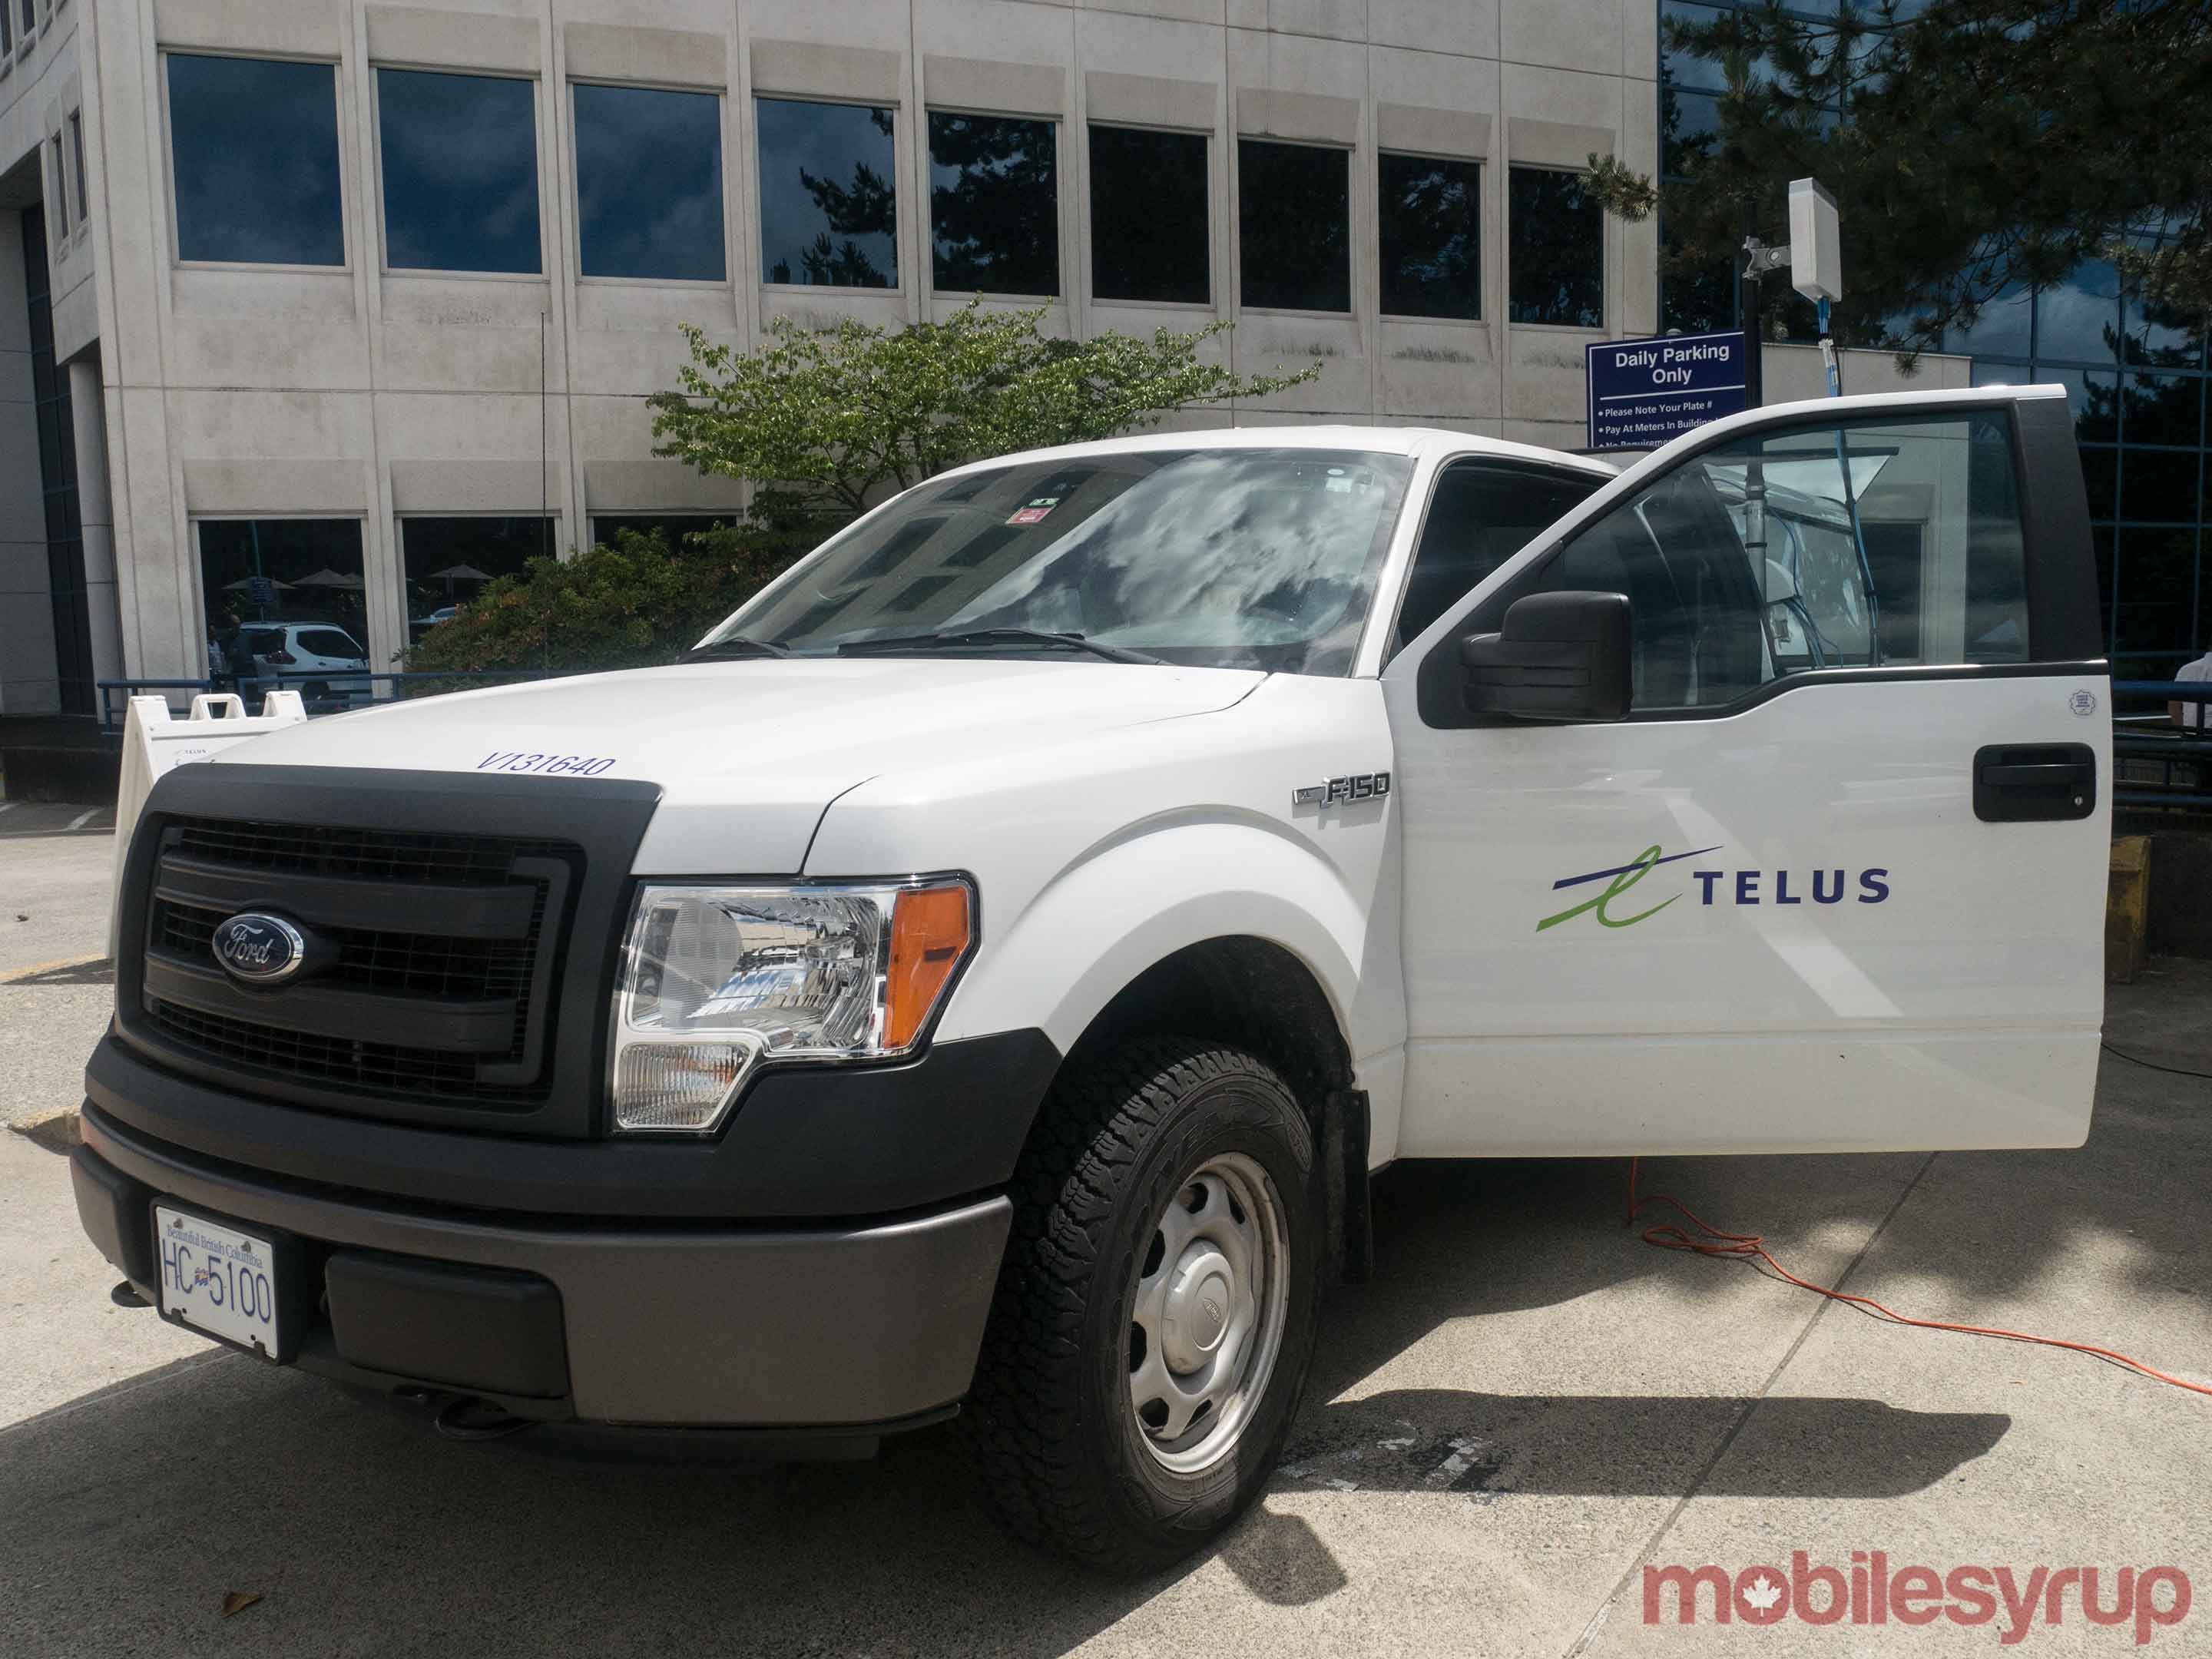 Telus truck at Huawei 5G event